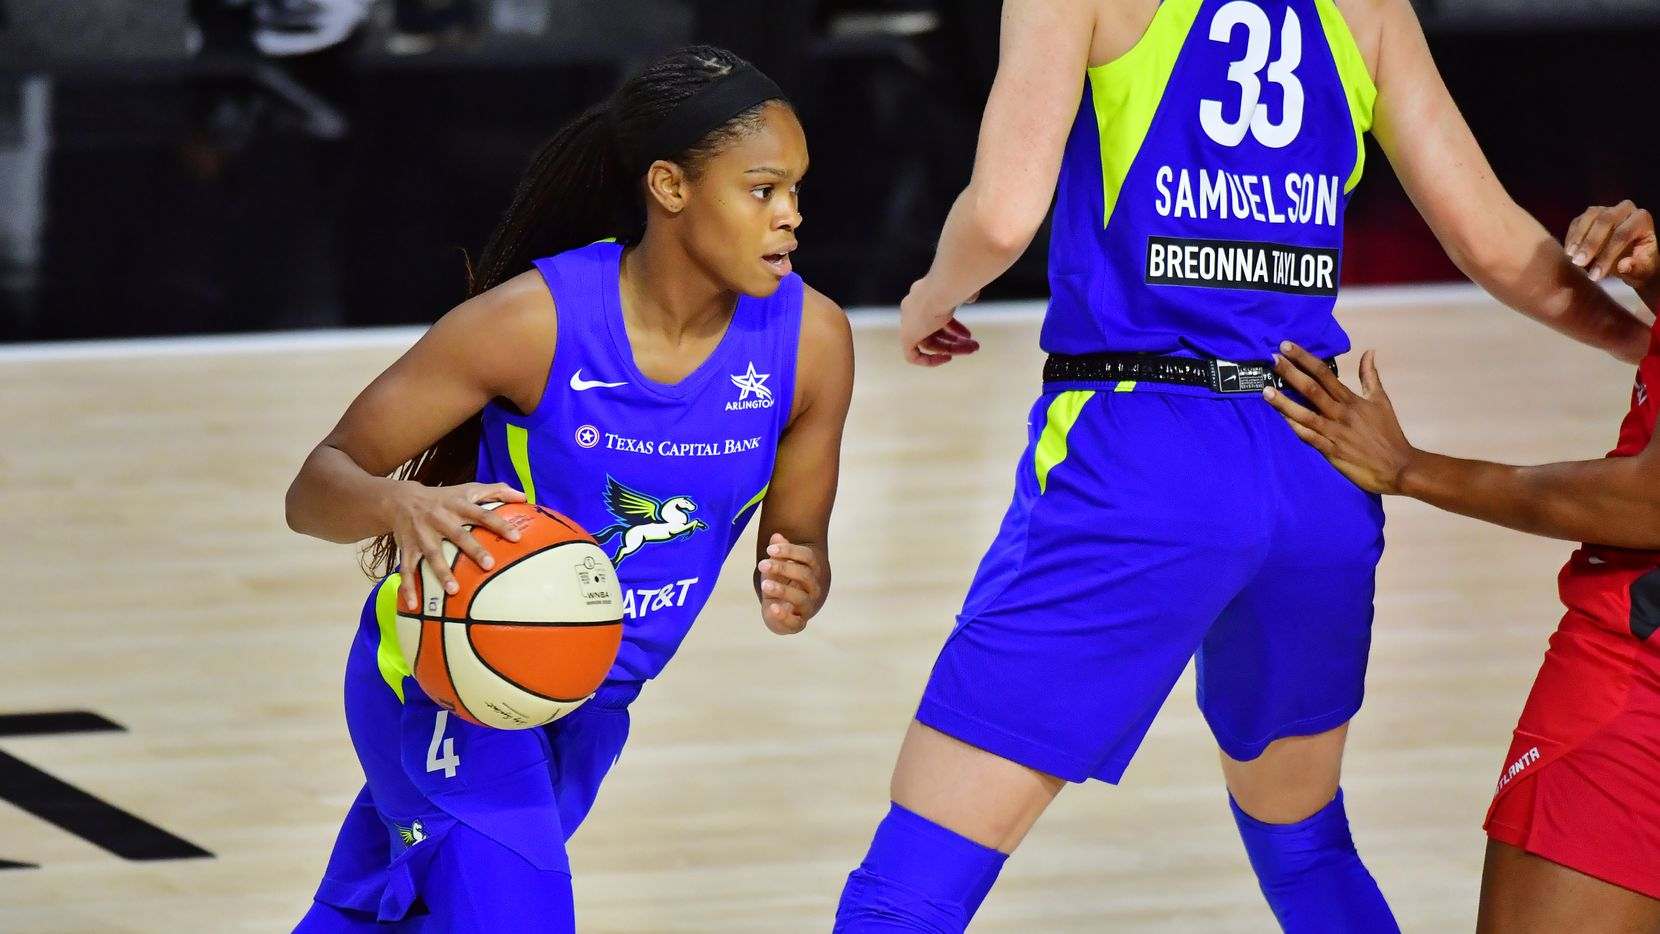 PALMETTO, FLORIDA - AUGUST 08: Moriah Jefferson #4 of the Dallas Wings dribbles during the first half of a game against the Atlanta Dream at Feld Entertainment Center on August 08, 2020 in Palmetto, Florida. (Photo by Julio Aguilar/Getty Images)